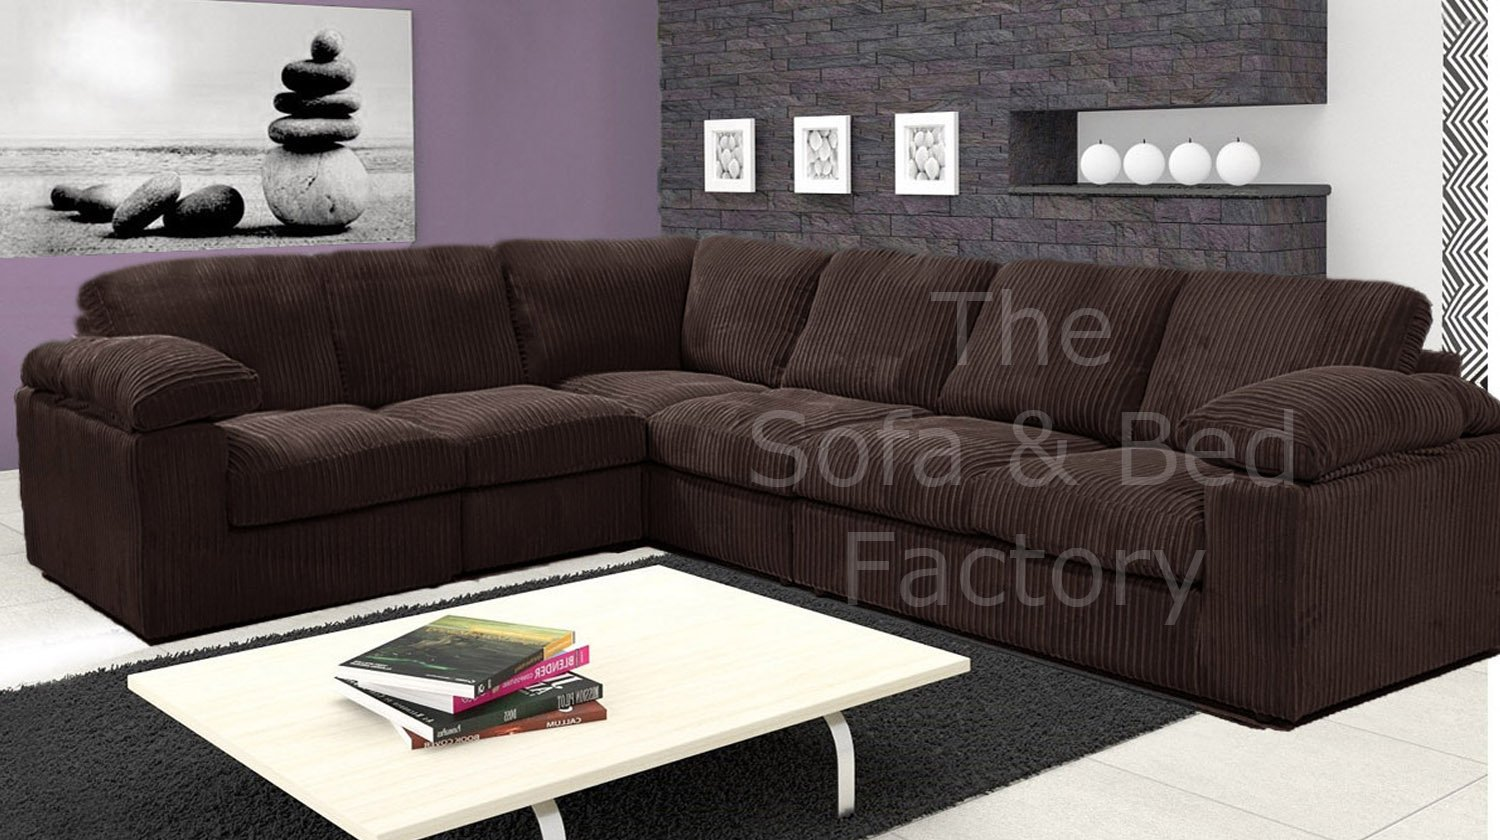 Details about Ruxley Large Brown Fabric 6 Seater Corner Sofa Cheap 2 C 3  Chocolate L Shape LHF